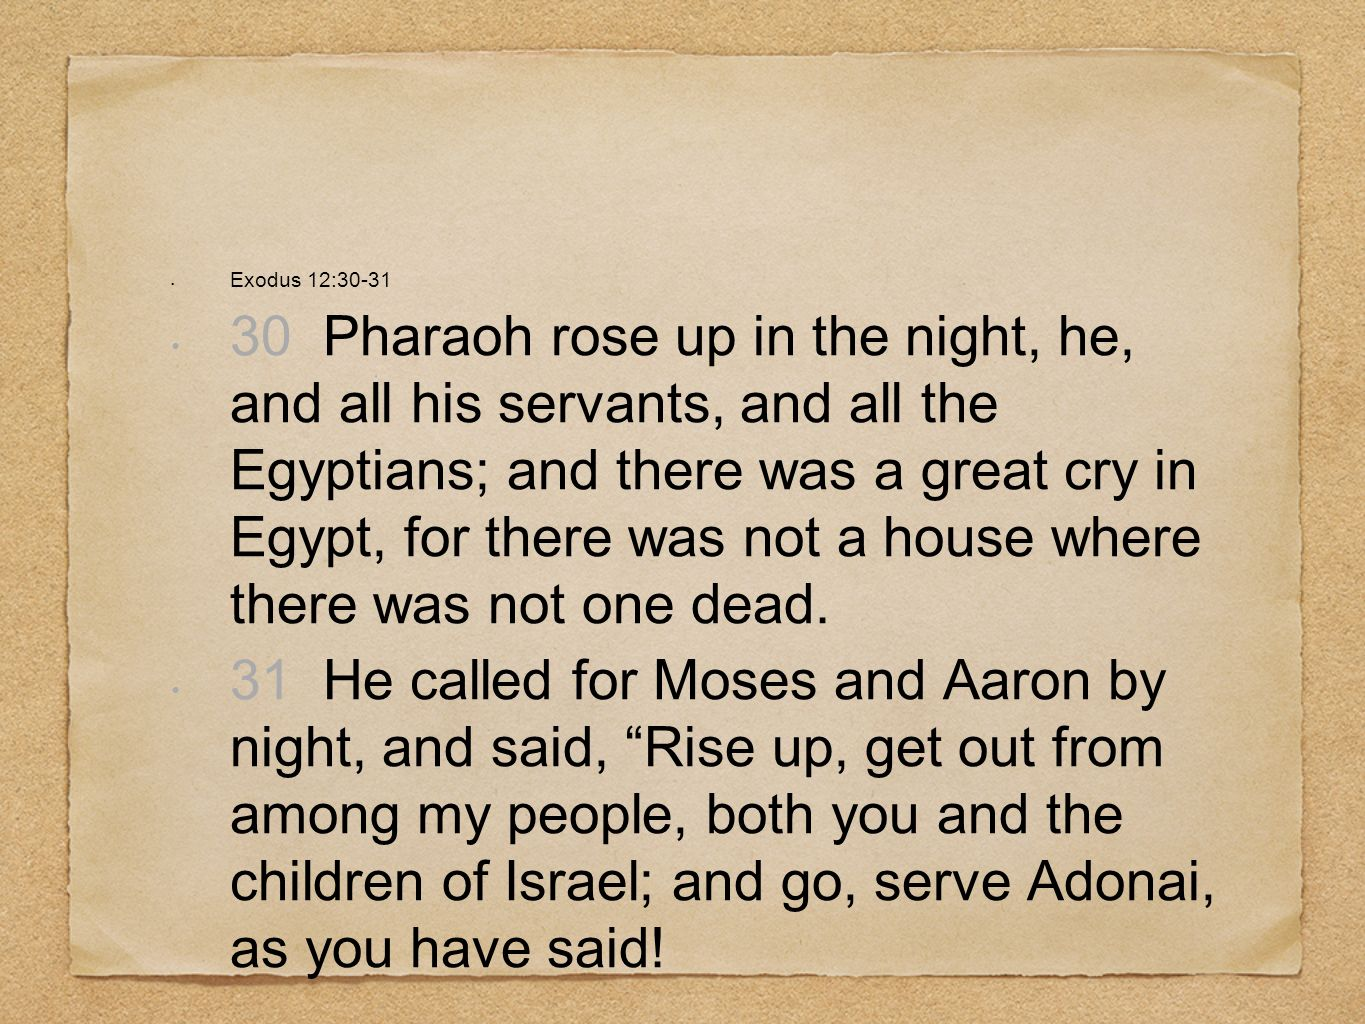 Exodus 12:30-31 30 Pharaoh rose up in the night, he, and all his servants, and all the Egyptians; and there was a great cry in Egypt, for there was no